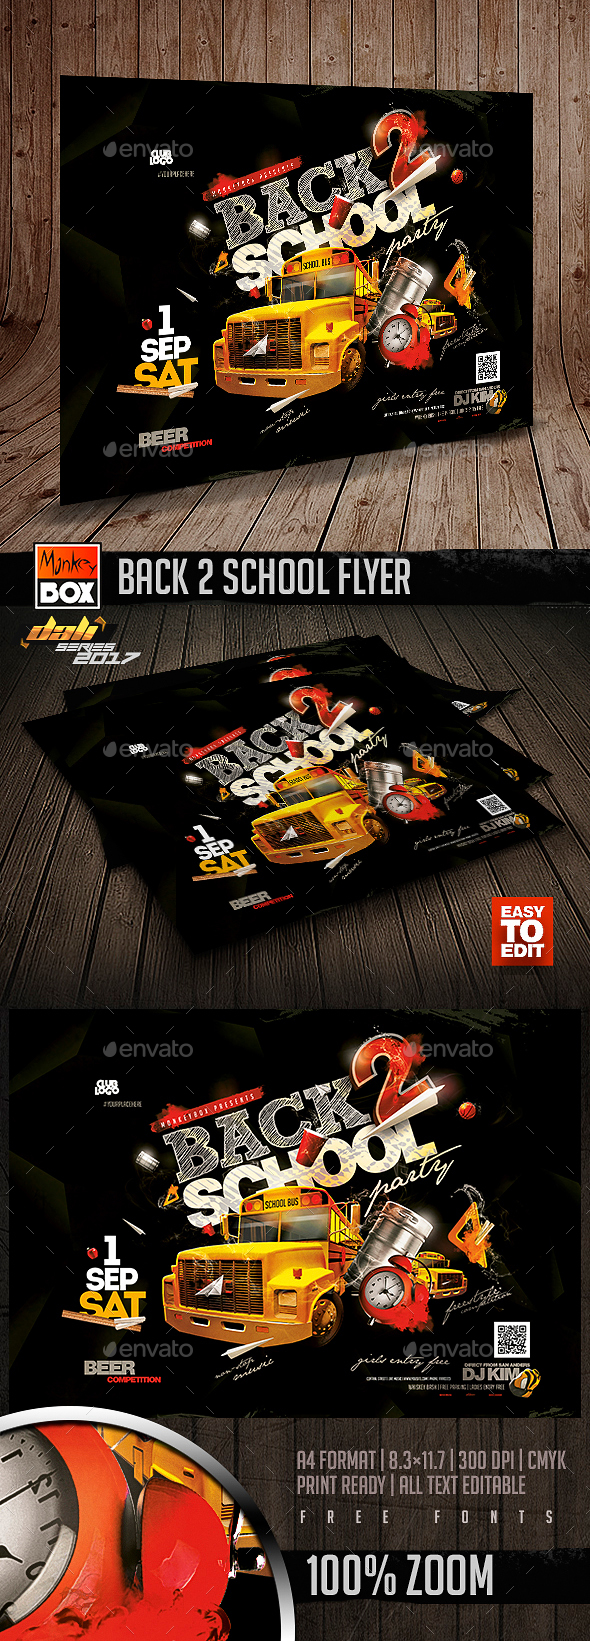 Back 2 School Flyer - Flyers Print Templates